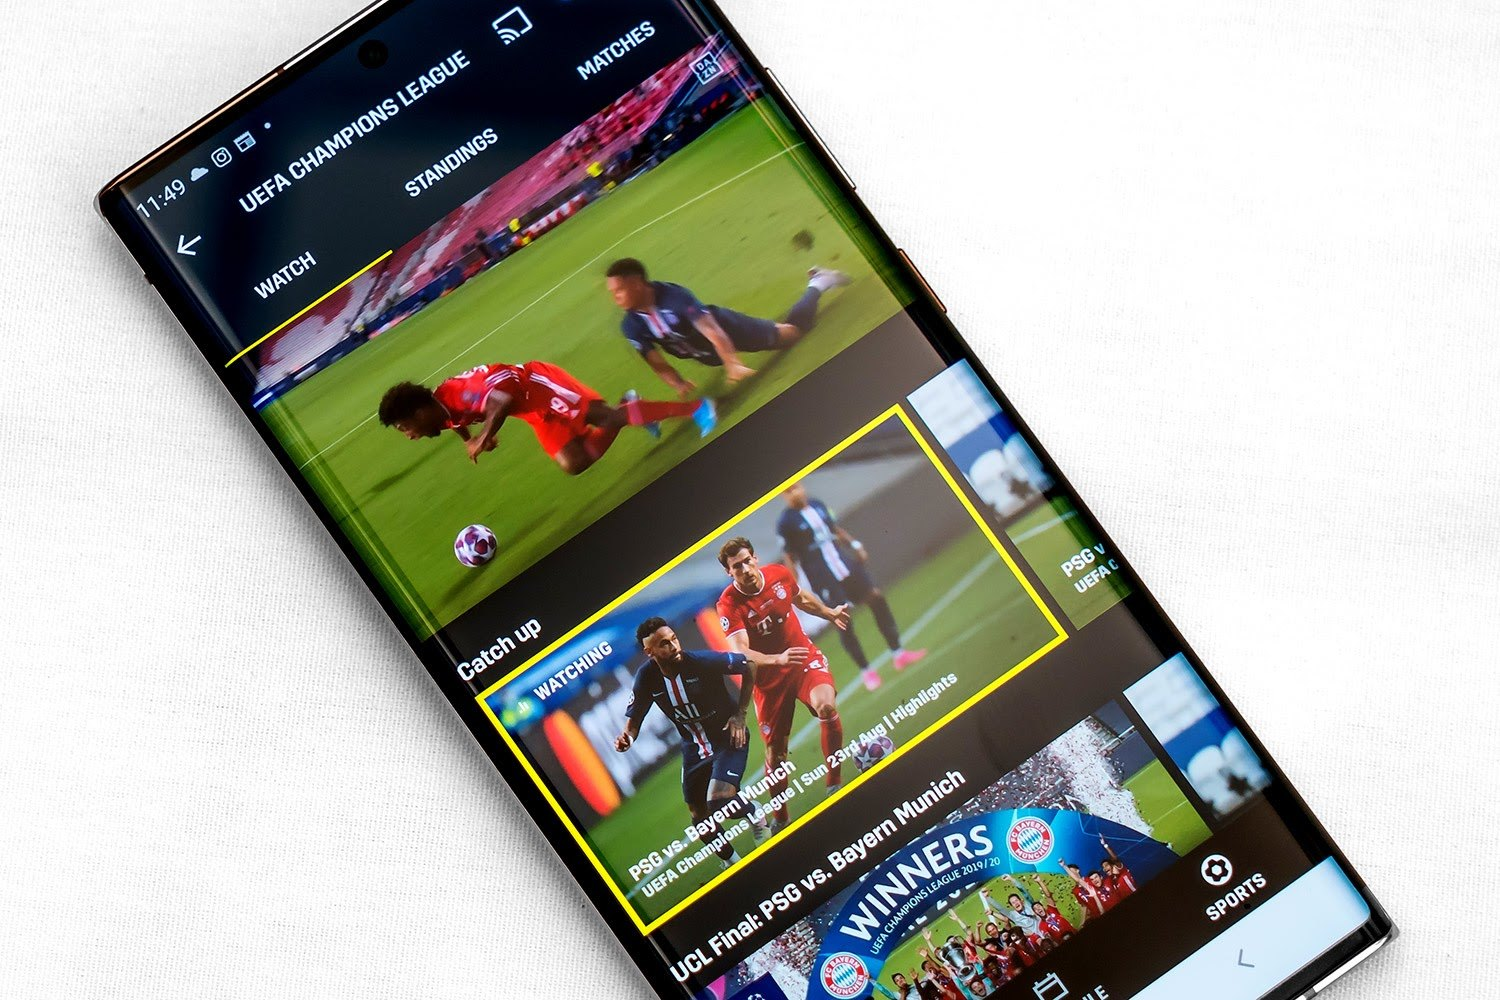 Discover The 10 Best Sports Streaming Apps For Watching Games